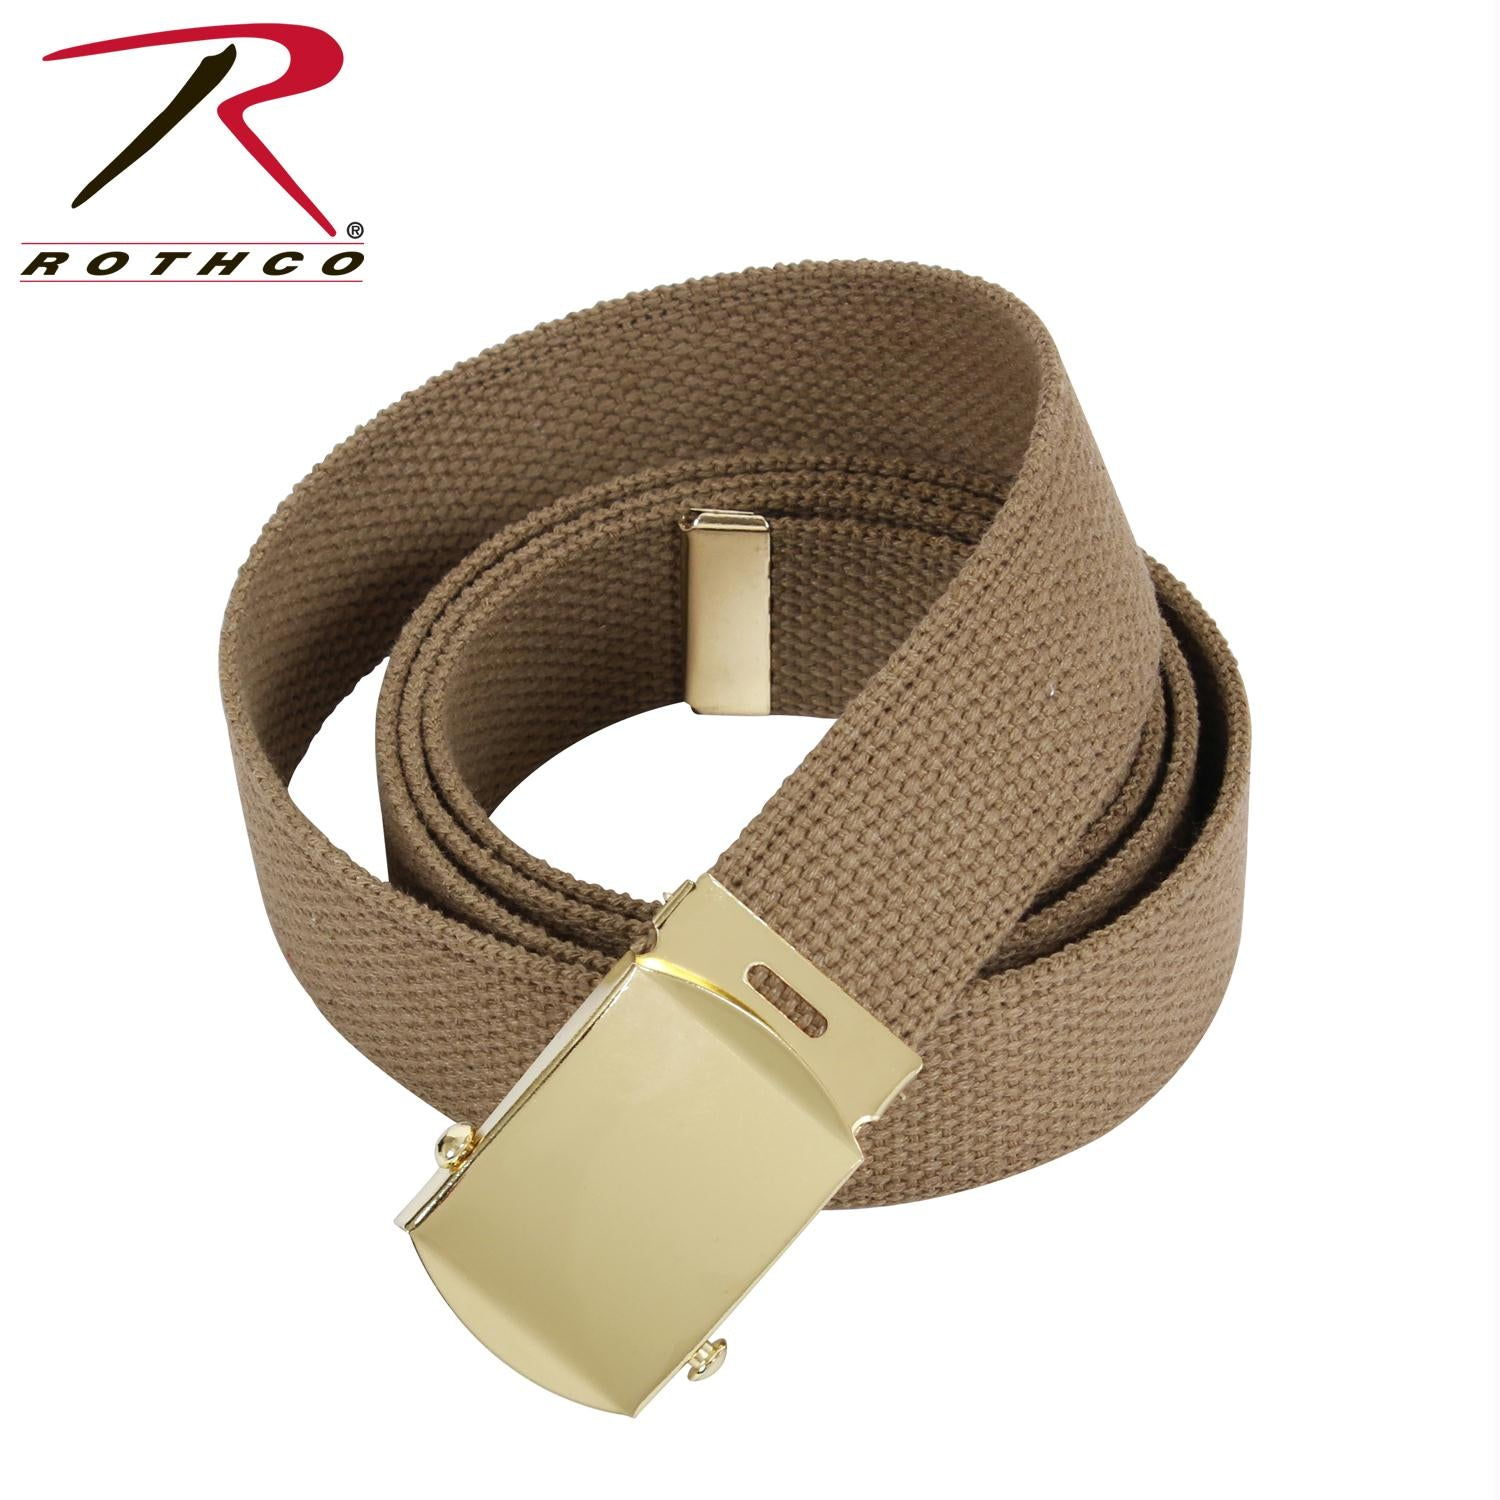 Rothco 54 Inch Military Web Belts - Gold / Coyote Brown